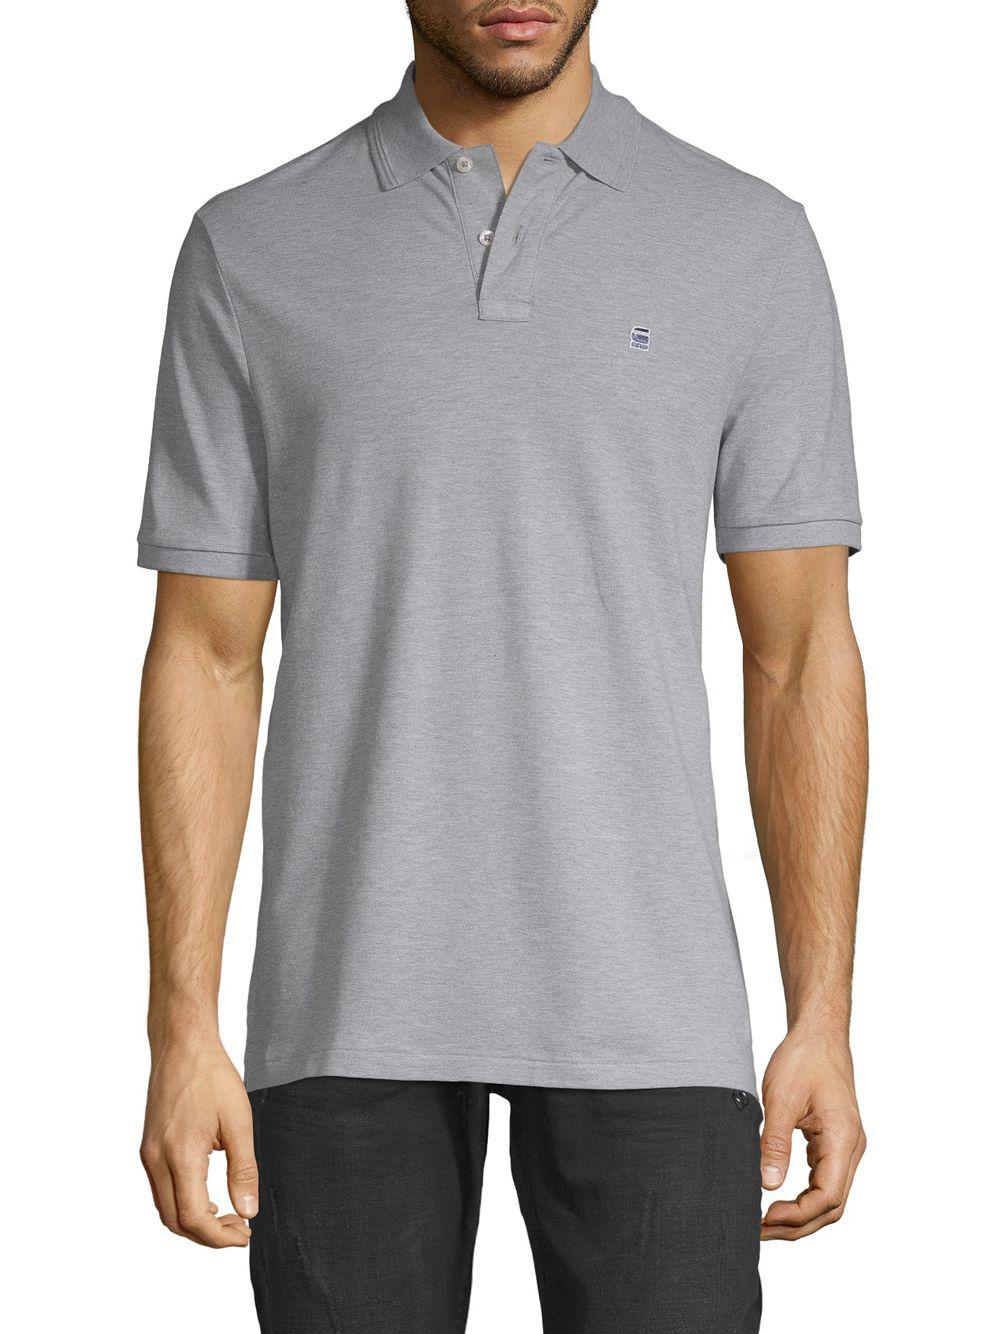 bc62d8faabc G-Star Raw Dunda Premium Polo in Gray for Men - Lyst